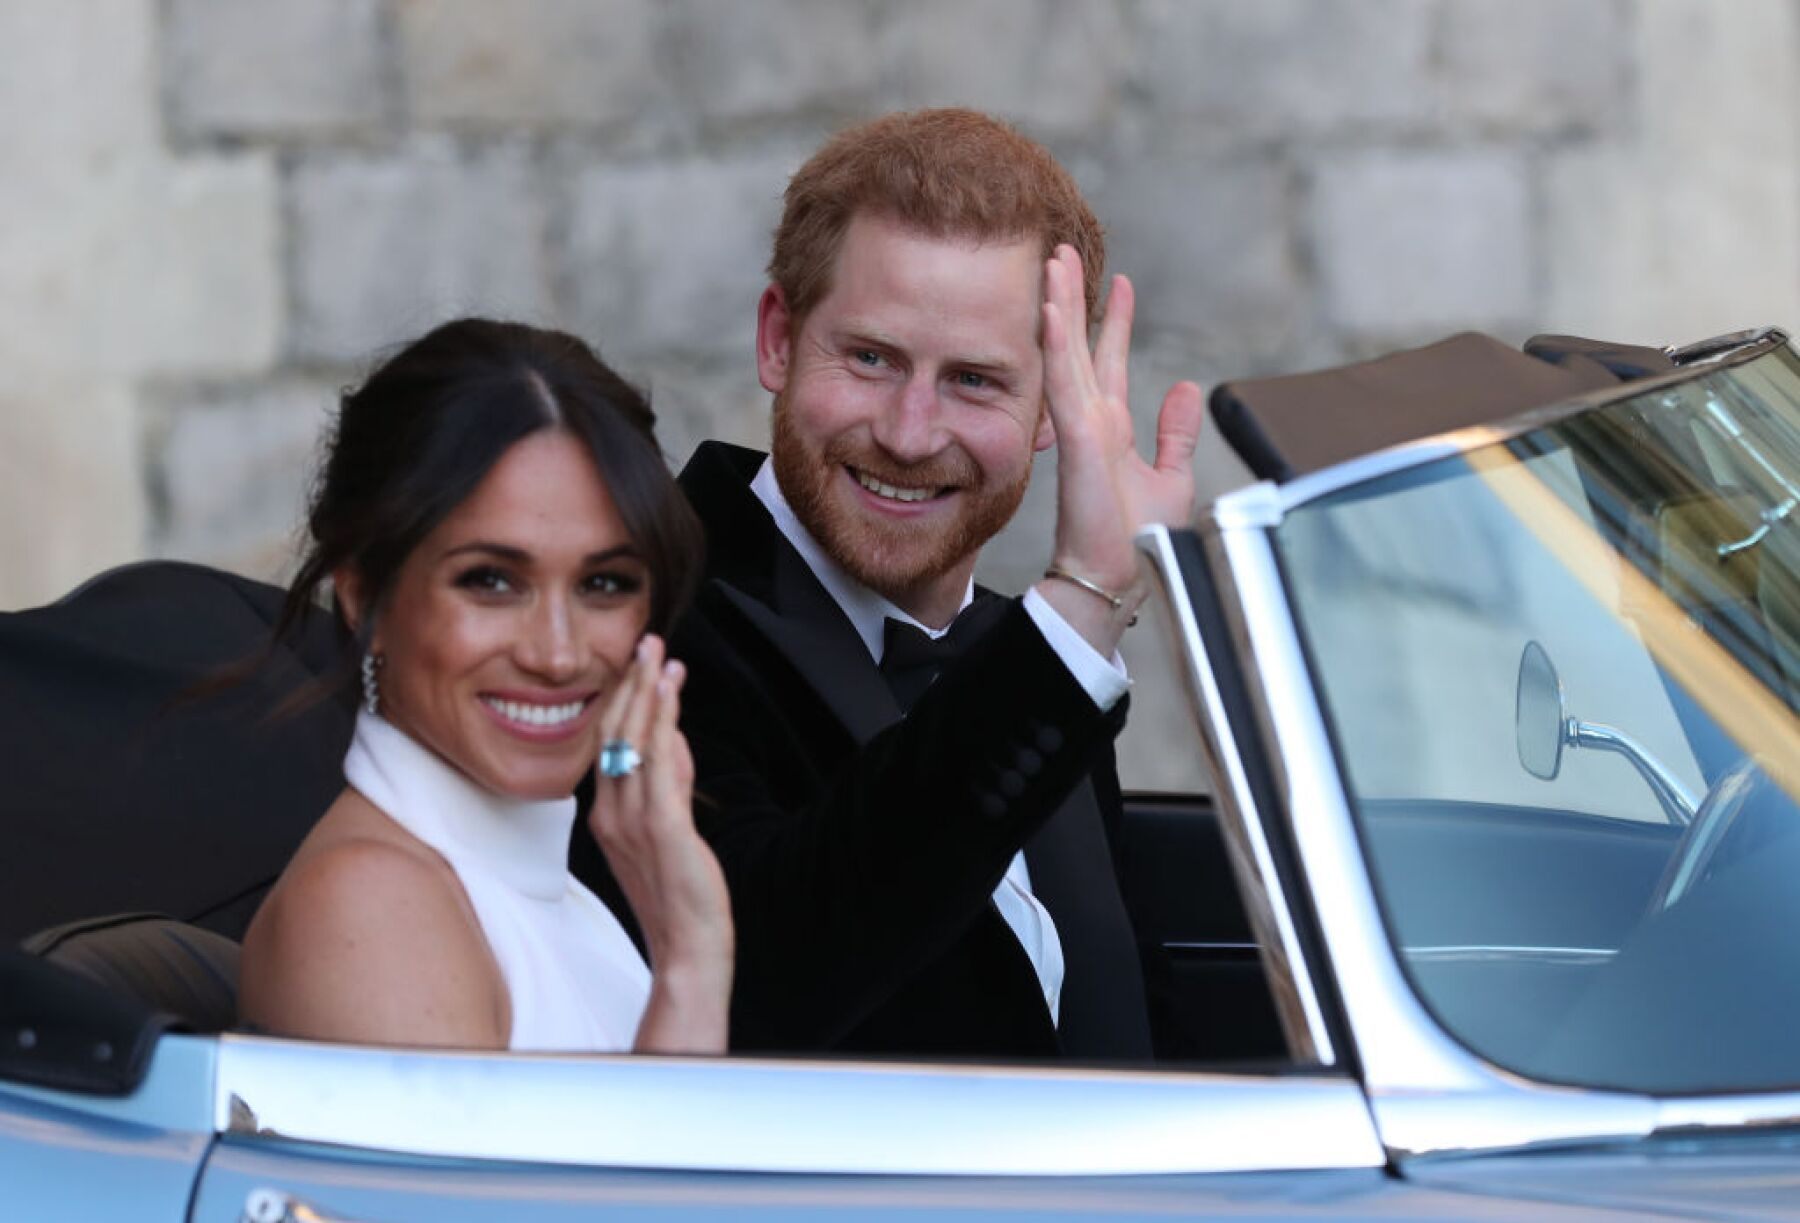 Megha Markle y el príncipe Harry